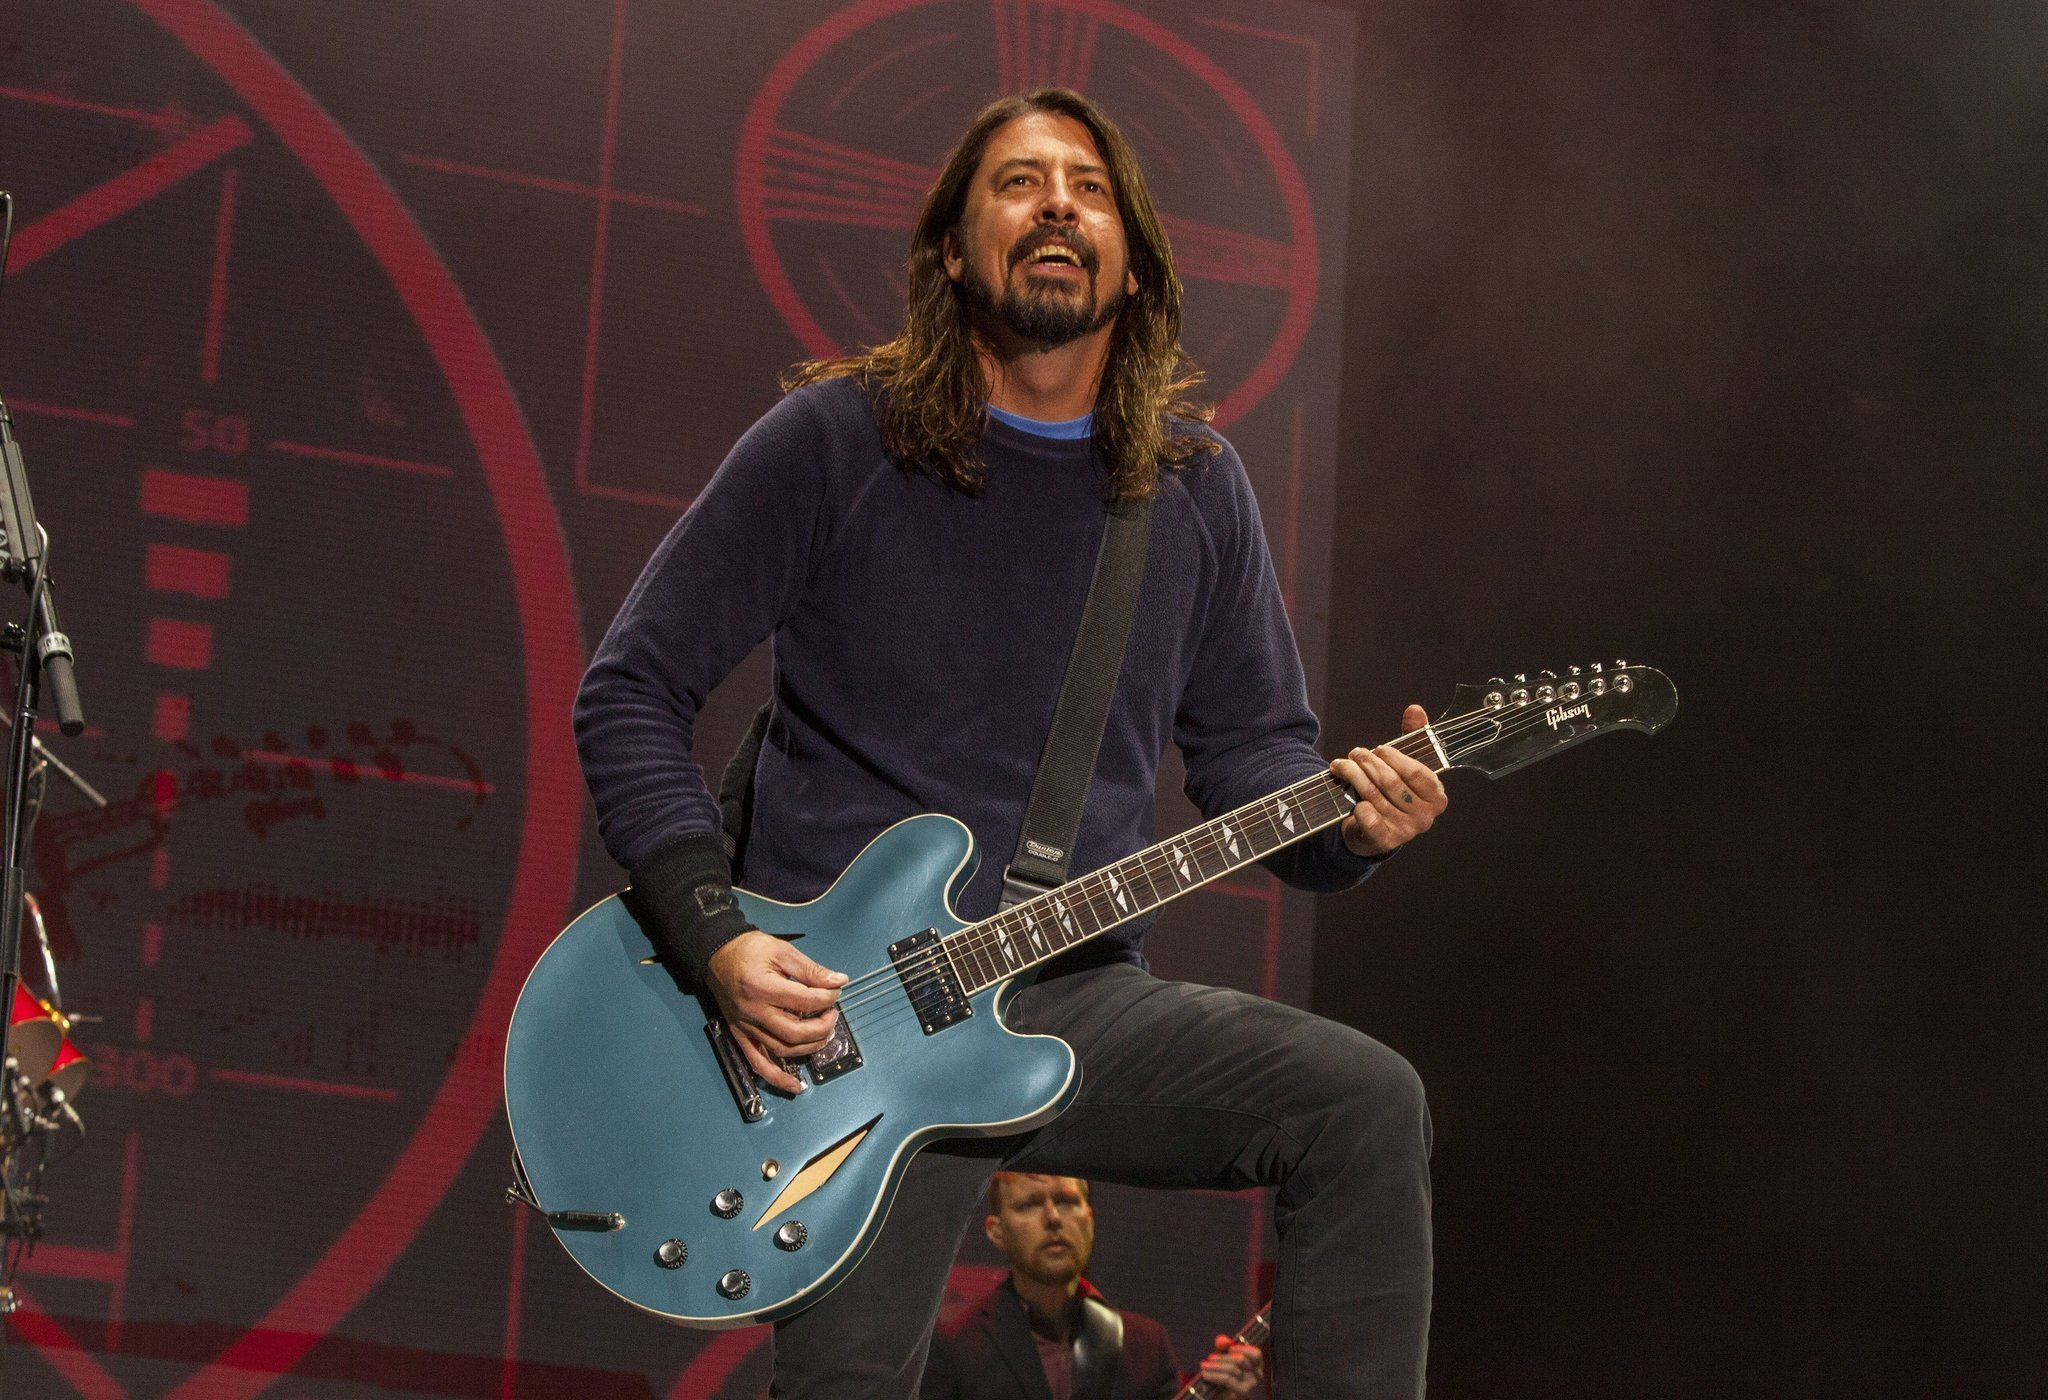 Cheap Tickets Concert >> Limited number of tickets for Foo Fighters at Wrigley Field on sale today - Chicago Tribune